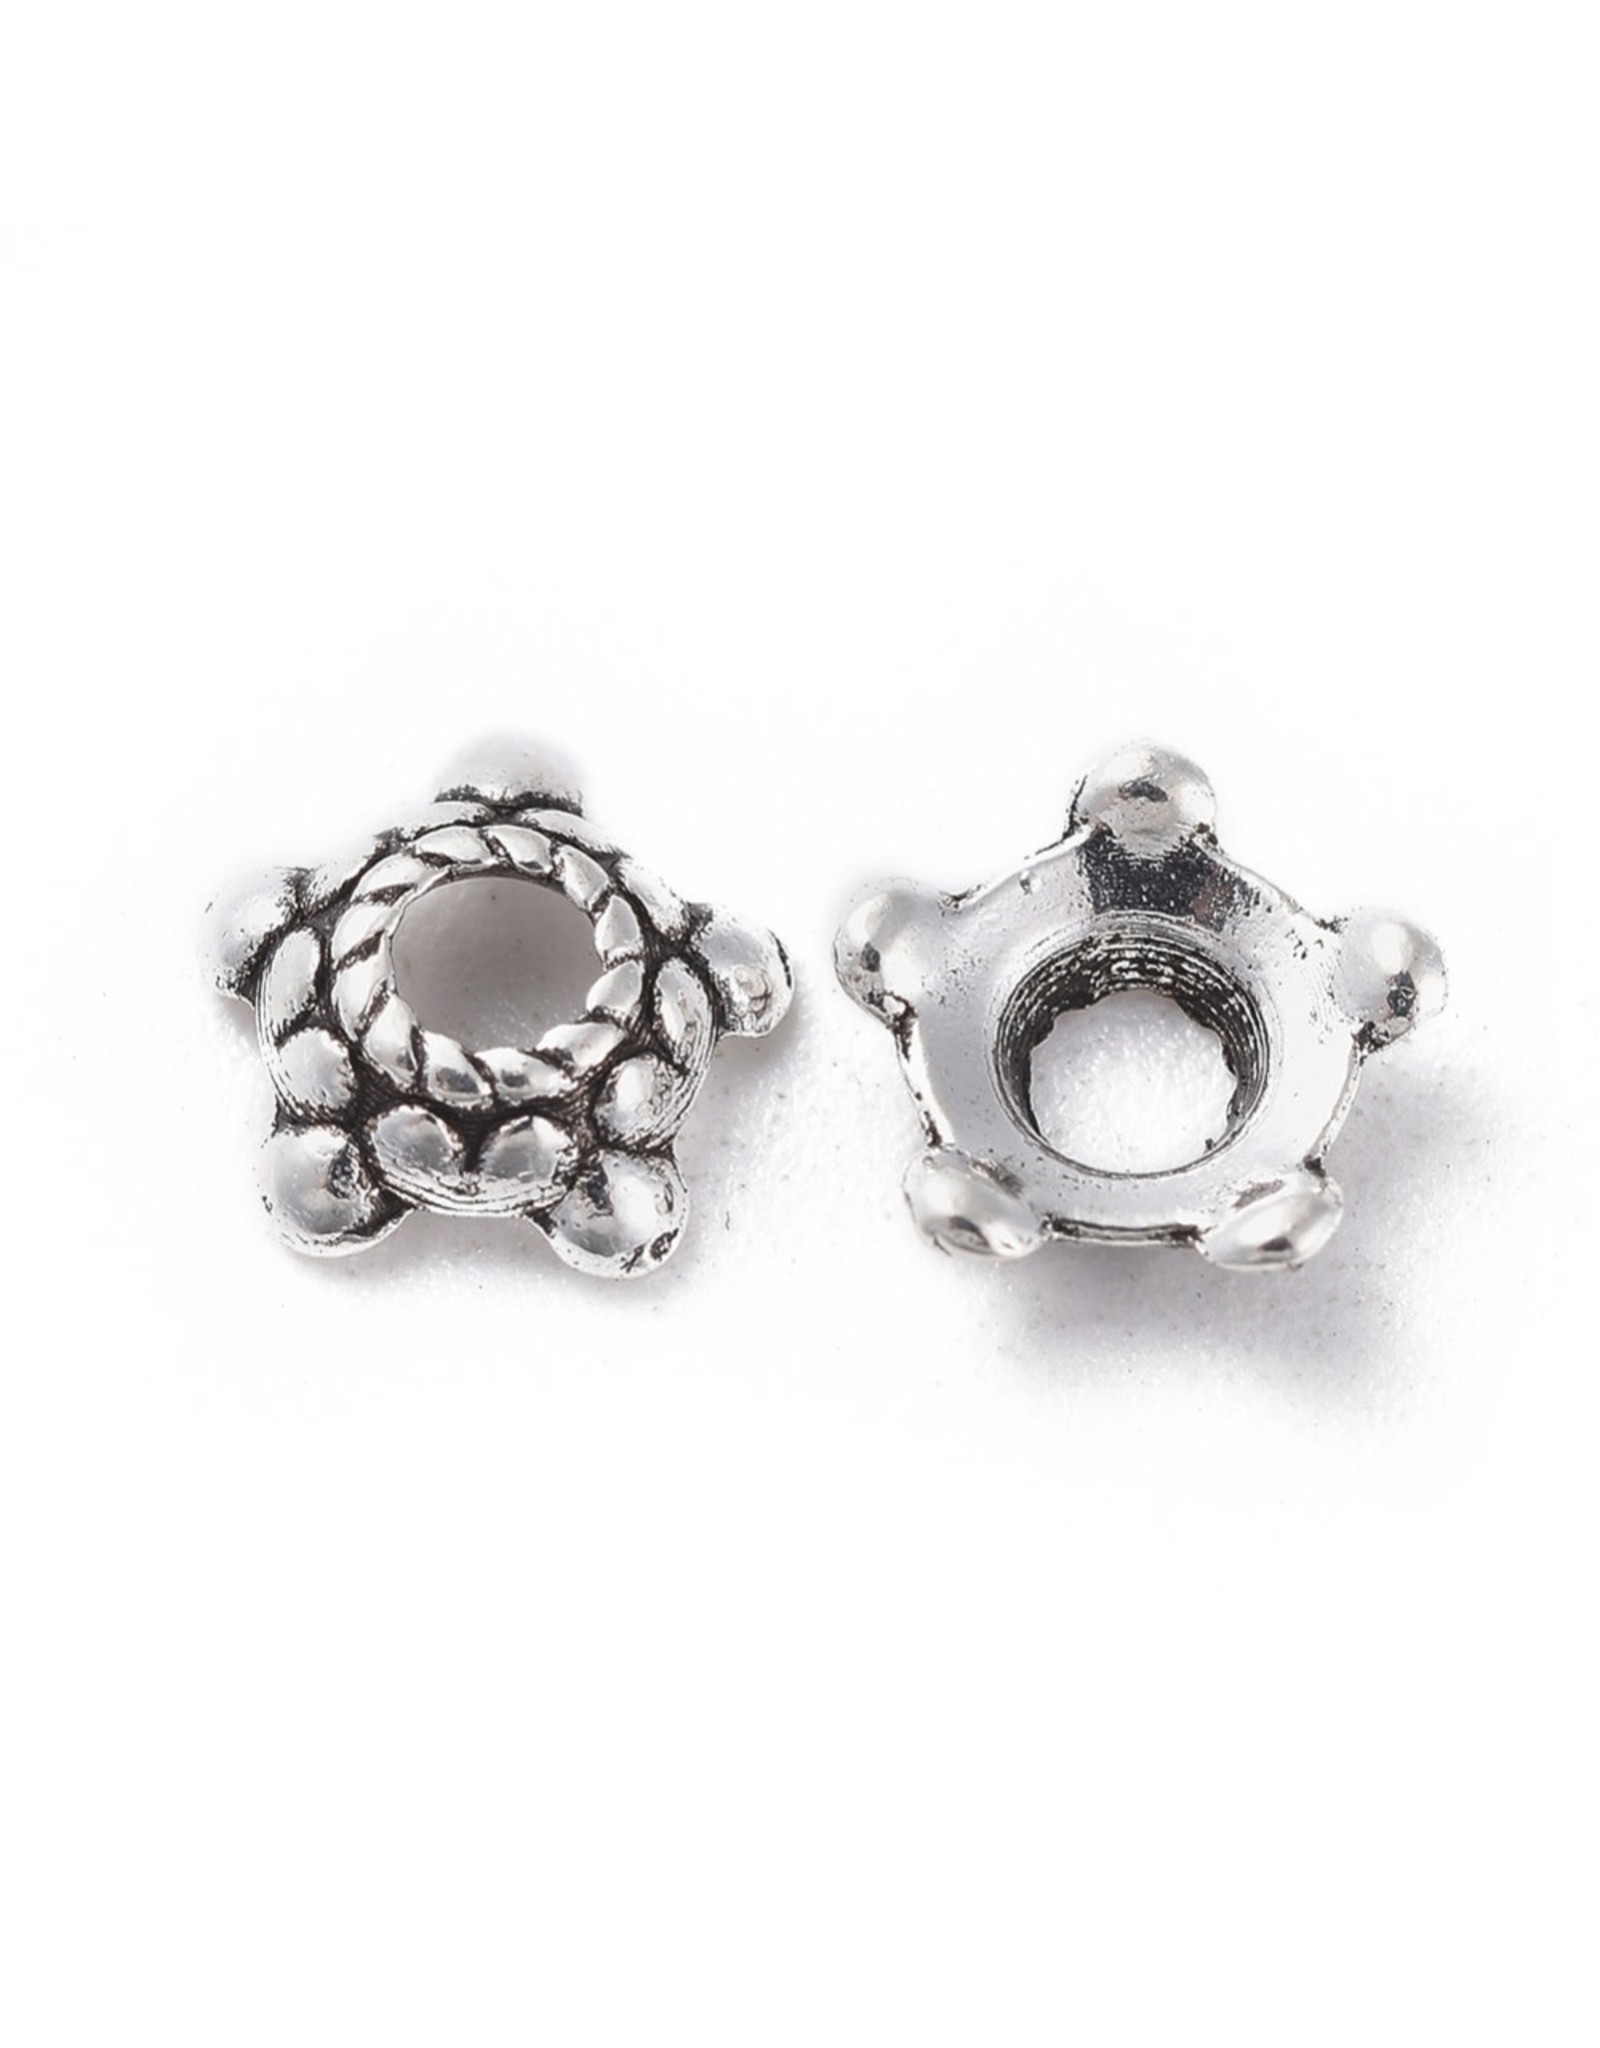 Bead Cap Bali Style 6mm Antique Silver   x100  NF